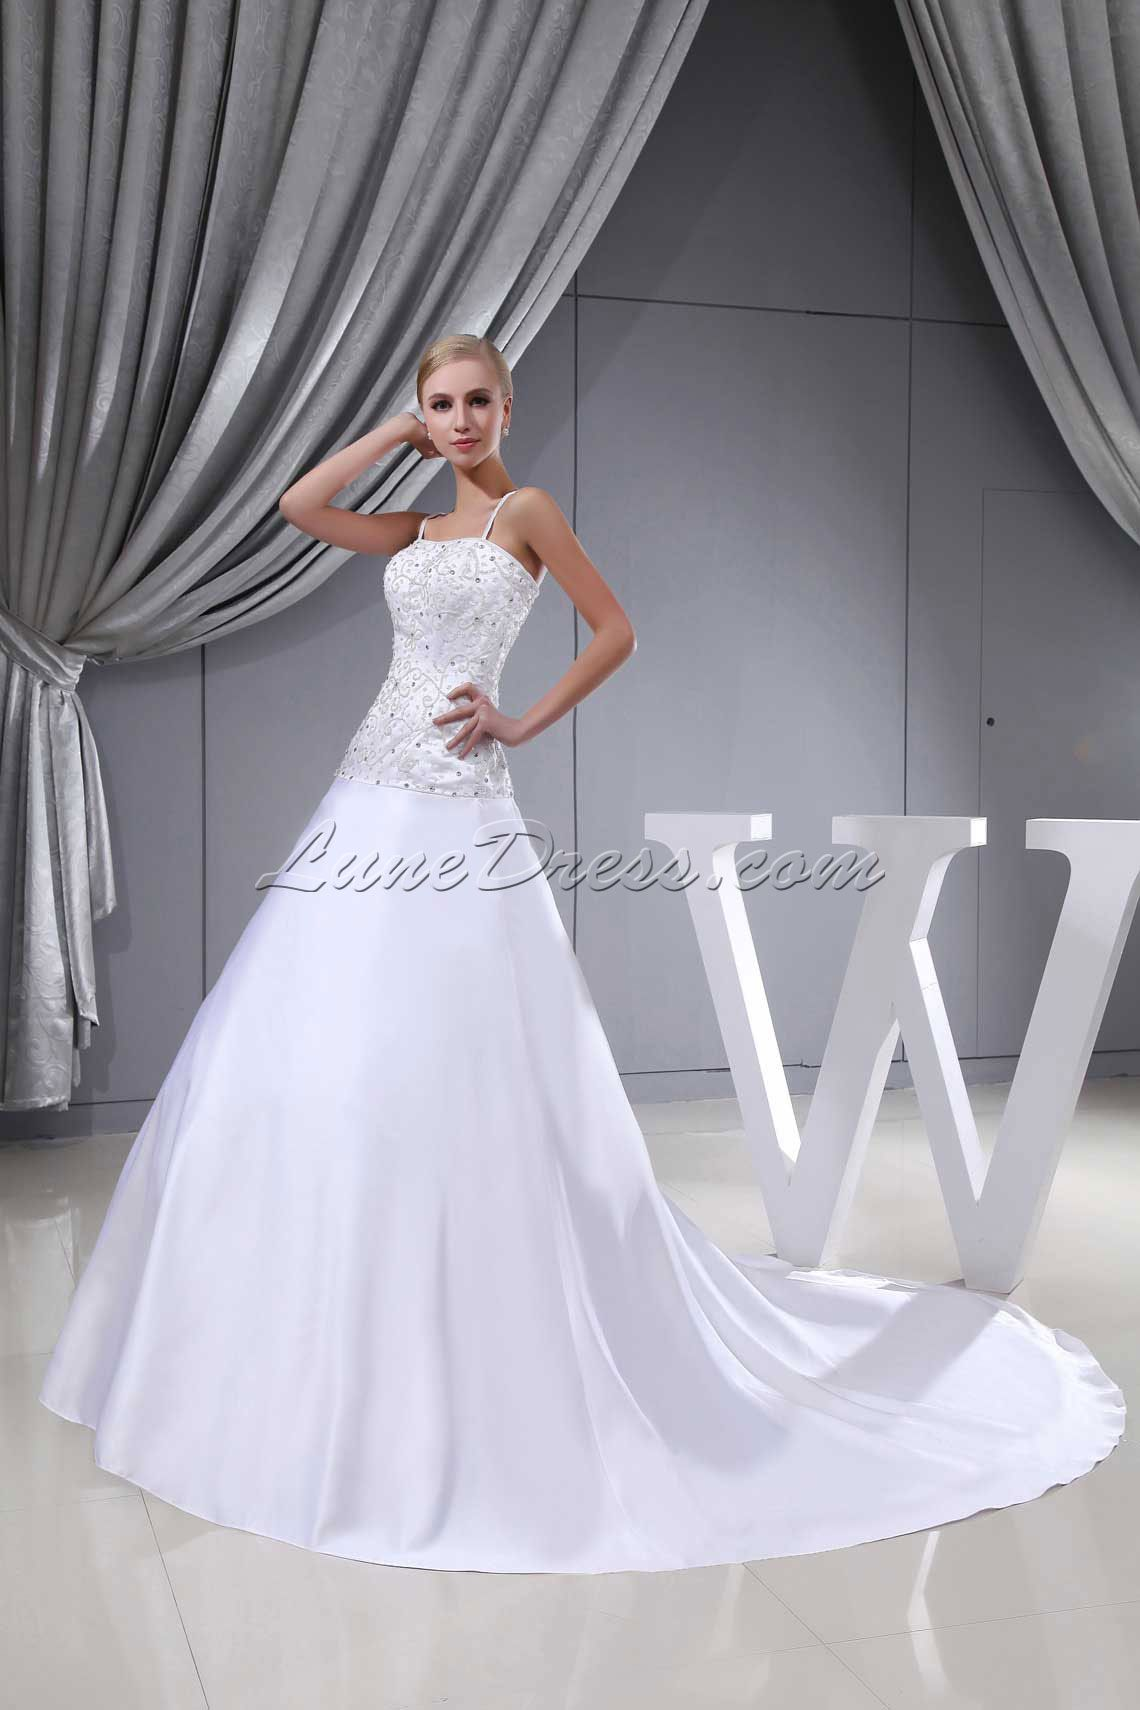 Wedding dress wedding dresses fashion porn pinterest wedding